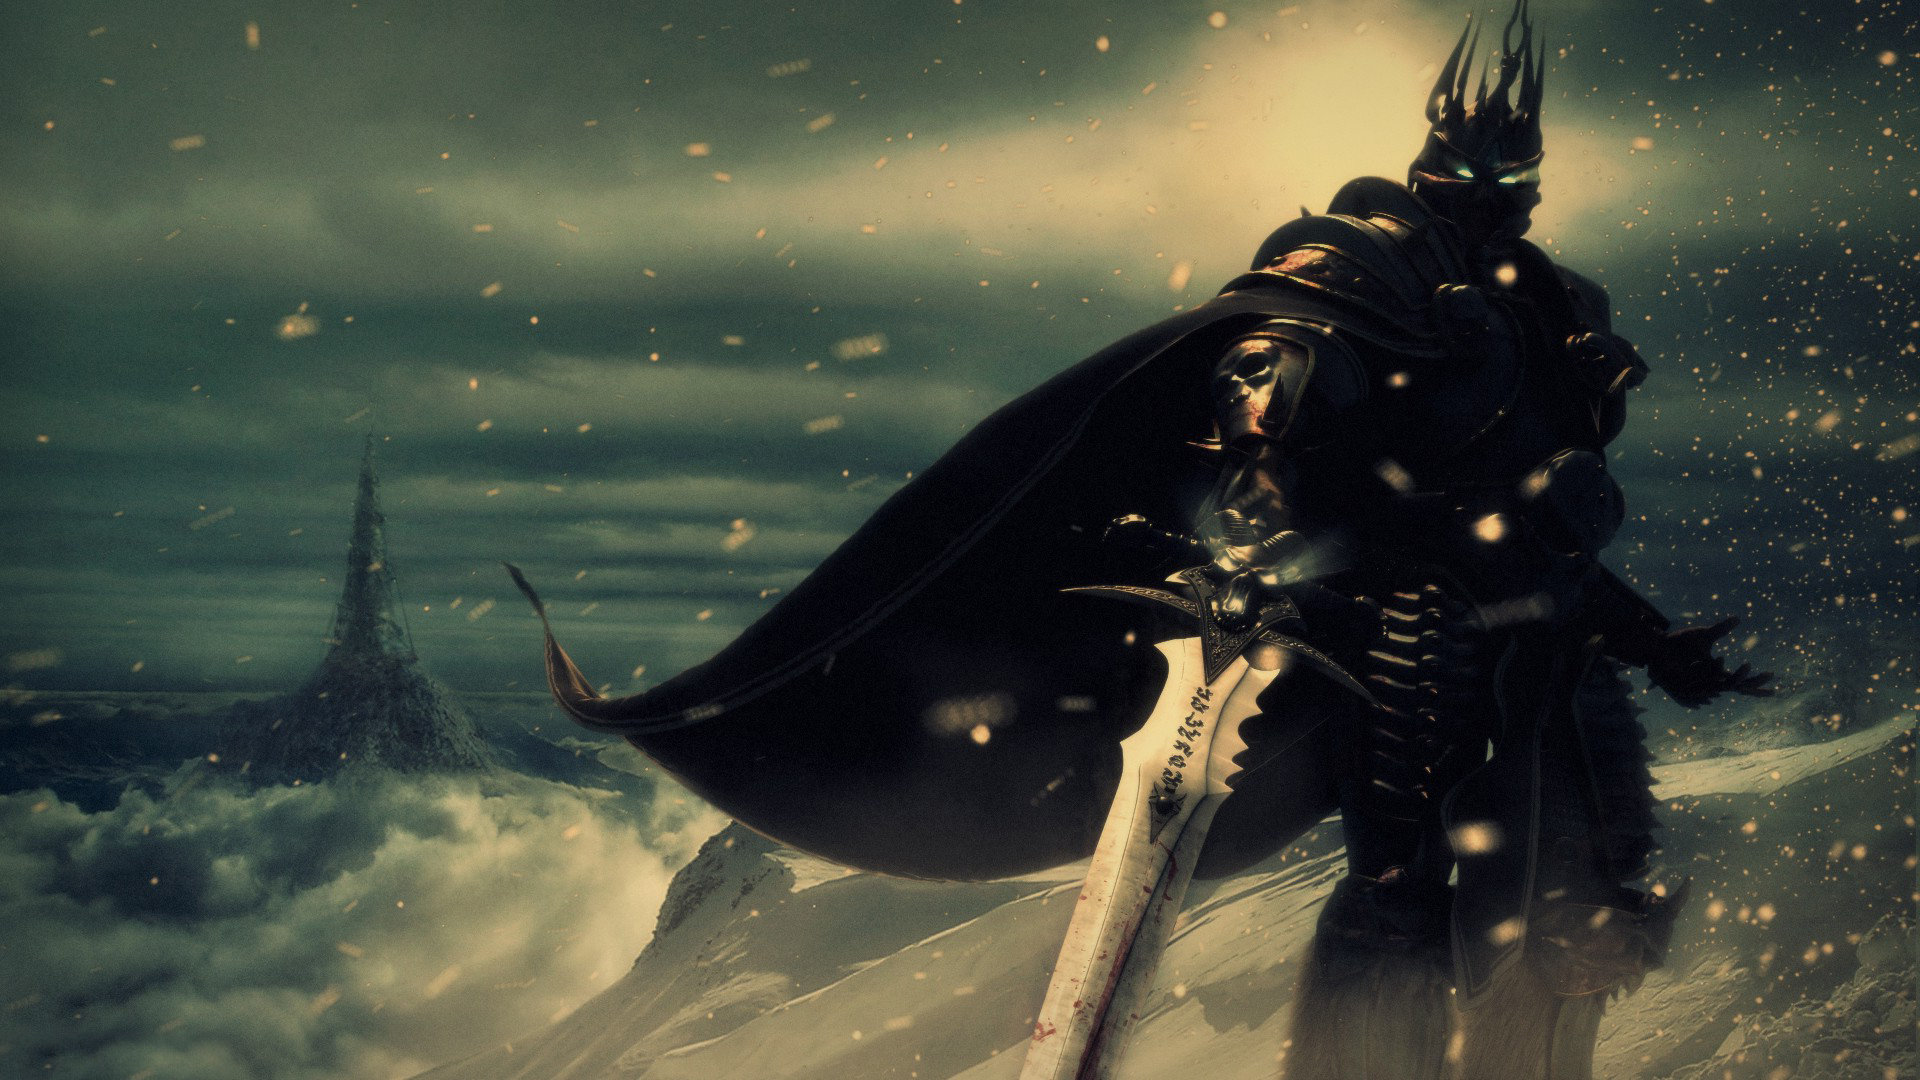 Free Download World Of Warcraft Wrath Of The Lich King Wallpaper